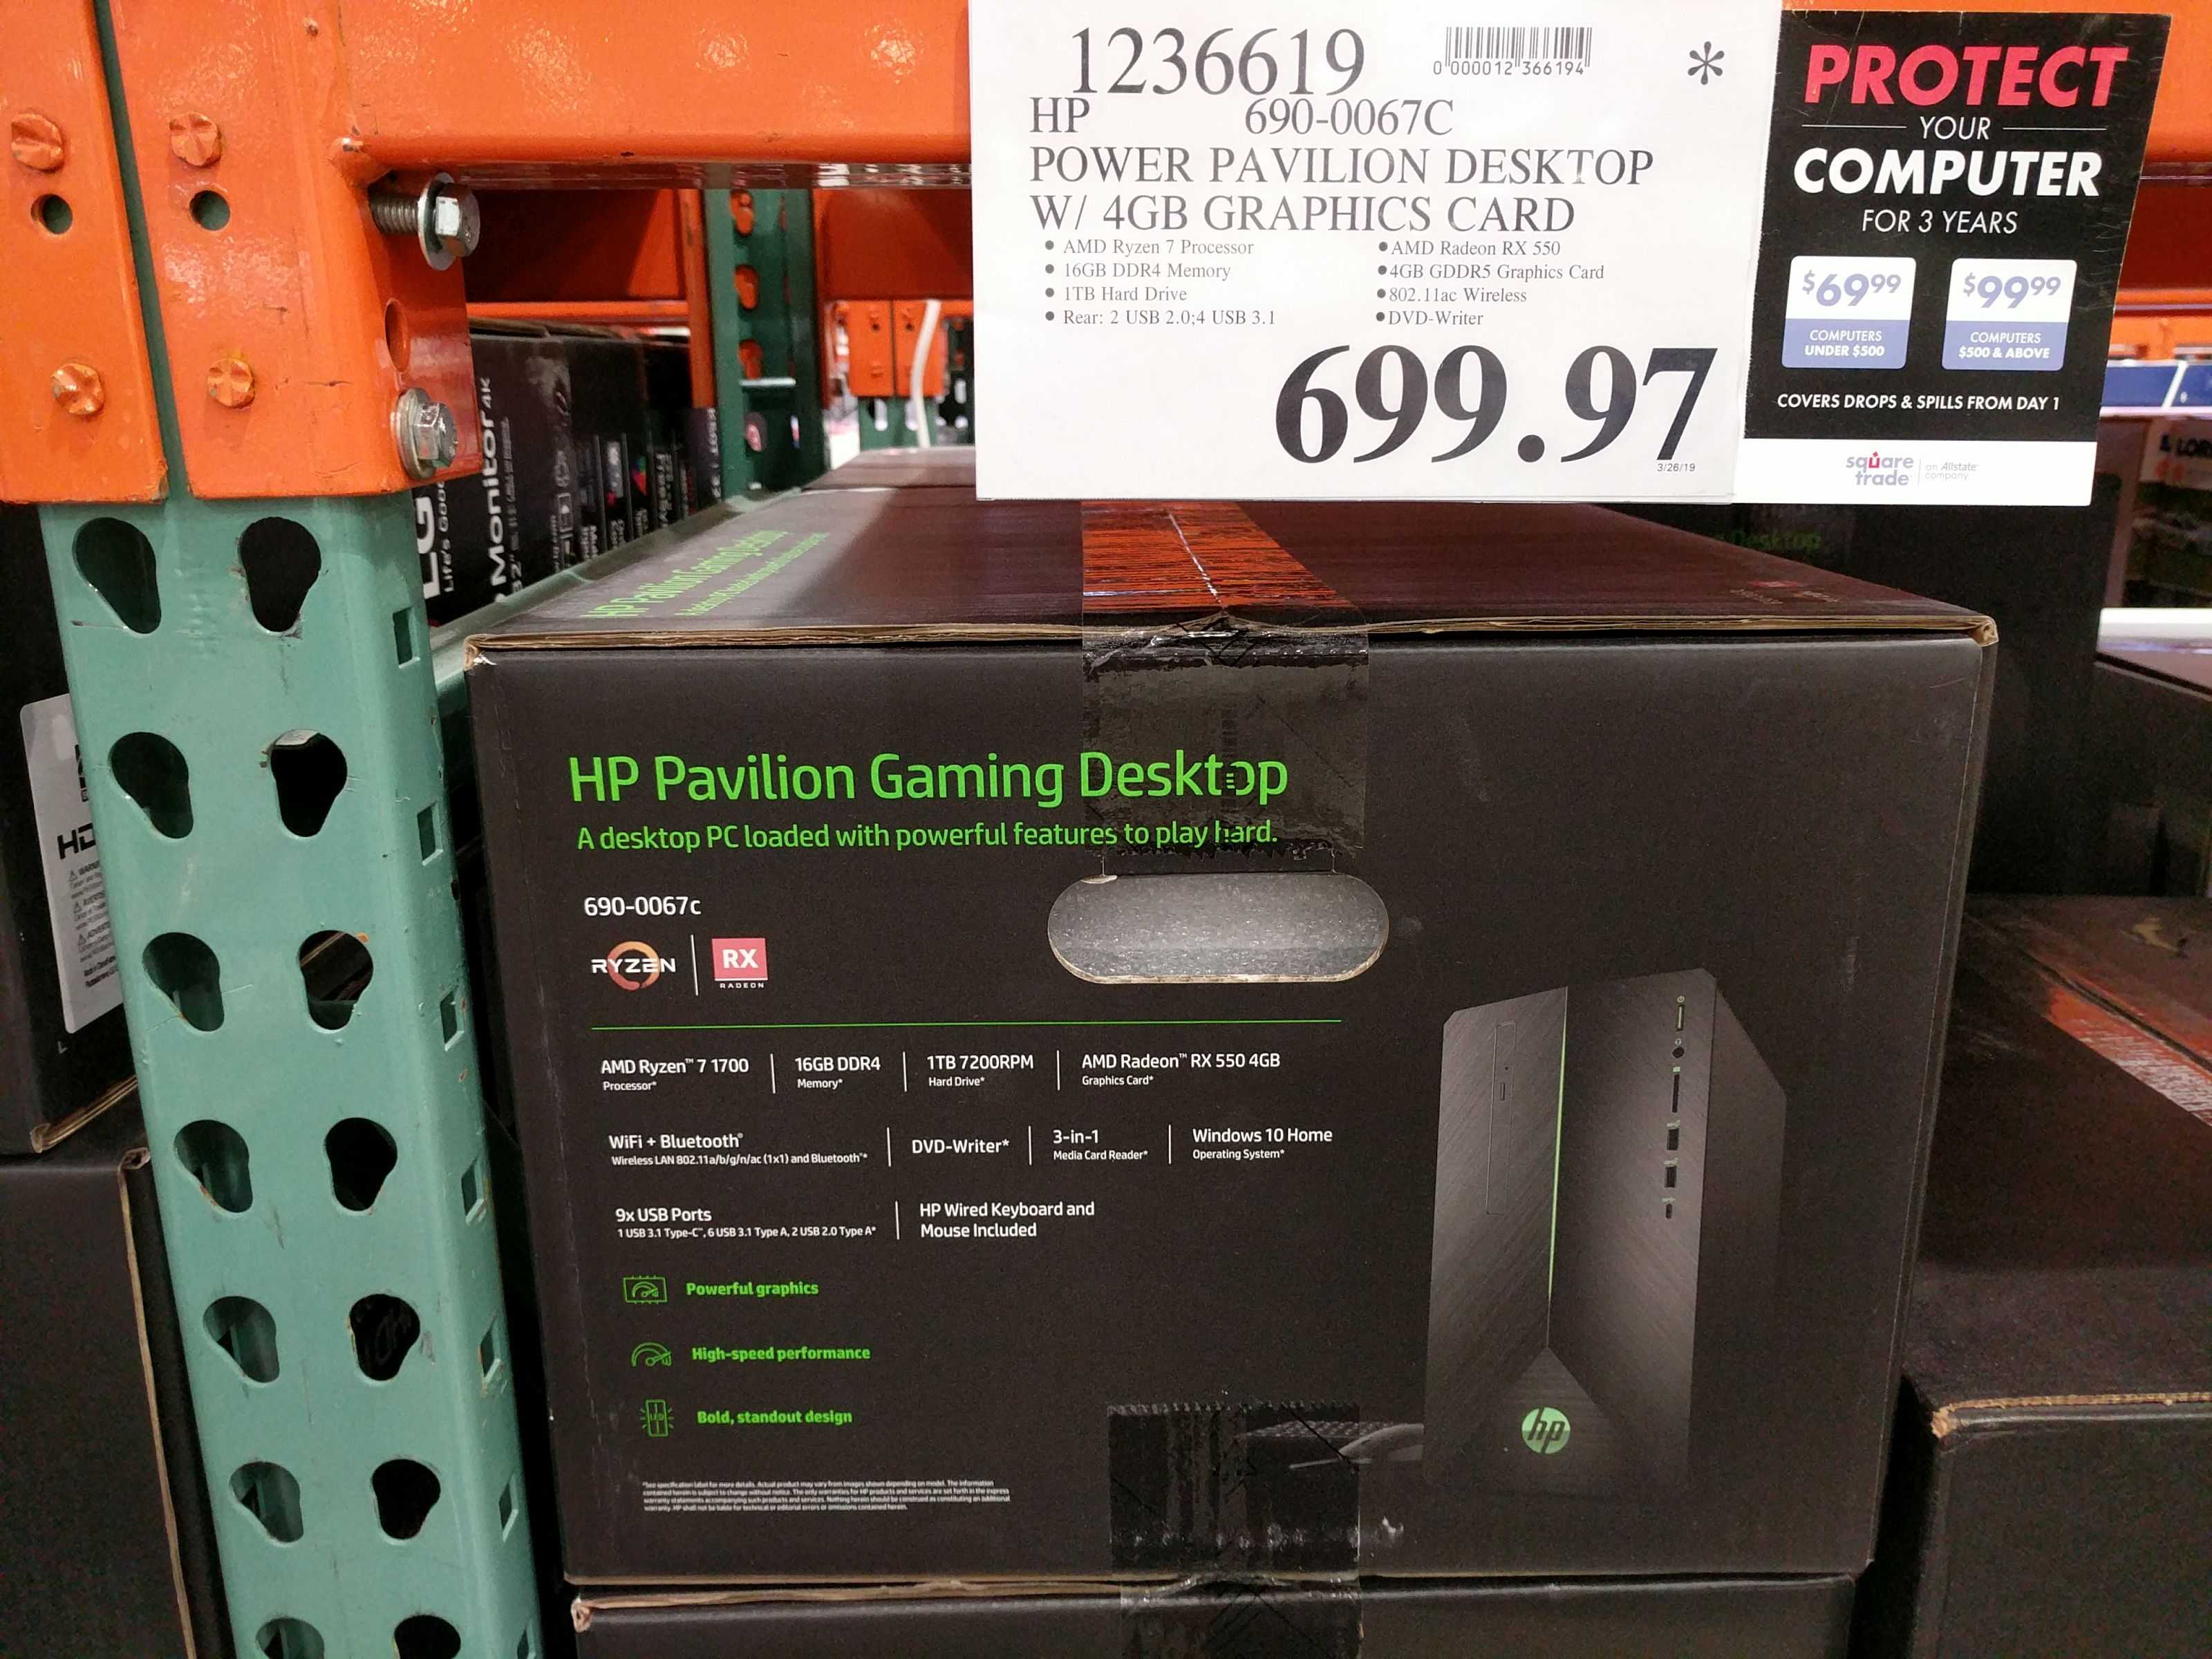 HP Pavilion Desktop PC 690-0067c - $699 97 #costco